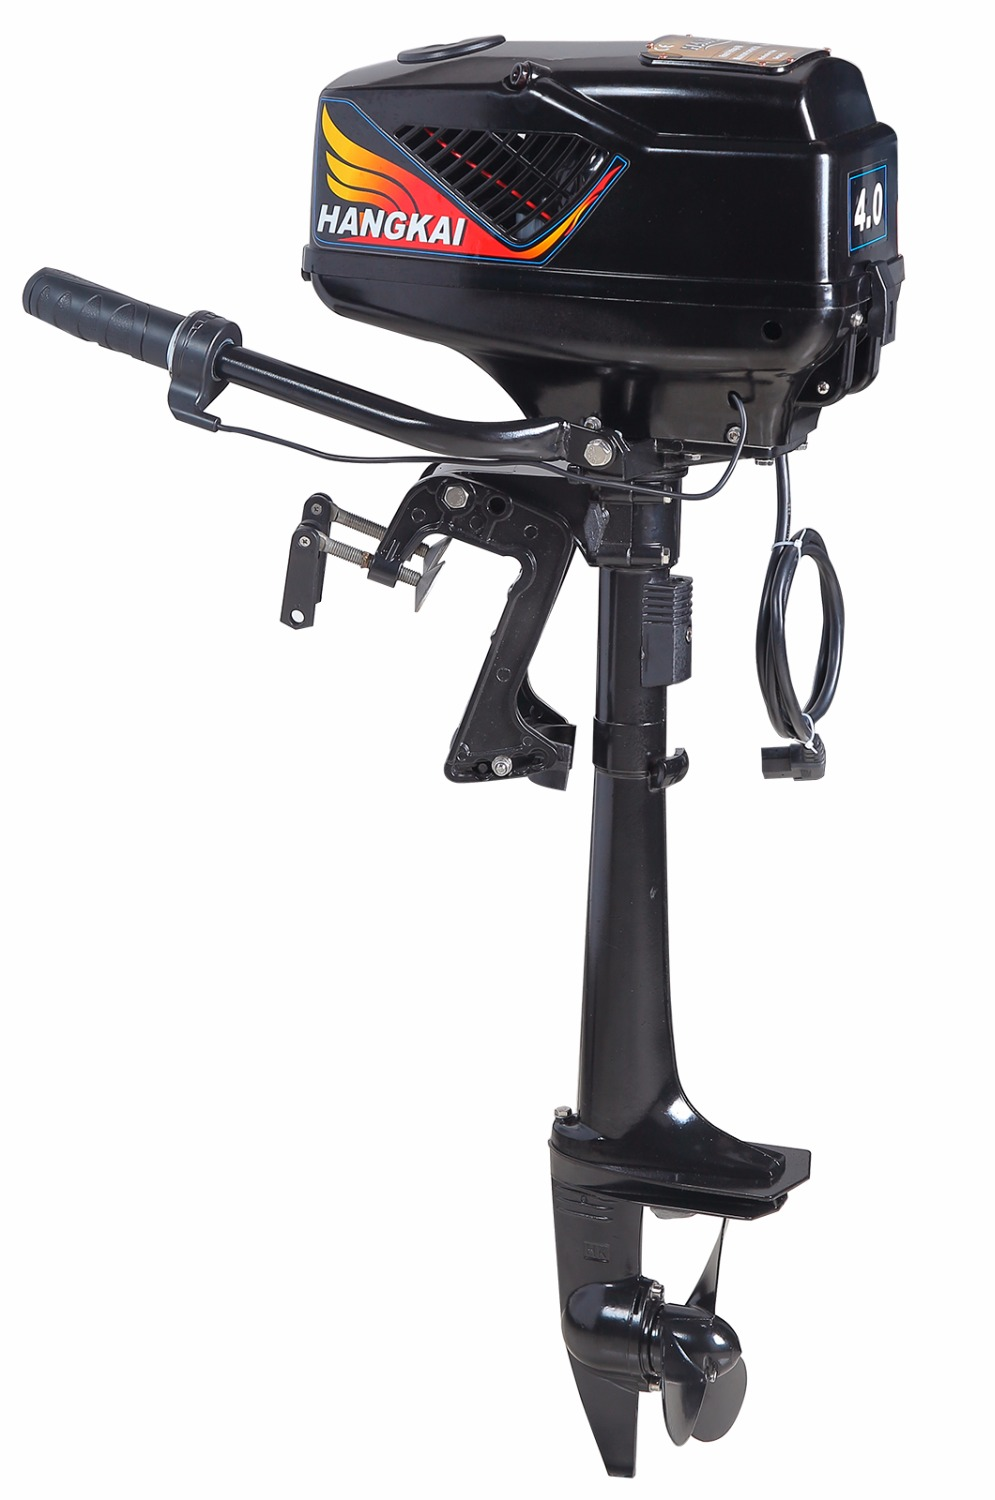 Brand new hangkai 4 0hp brushless electric boat outboard for 400 hp boat motor price